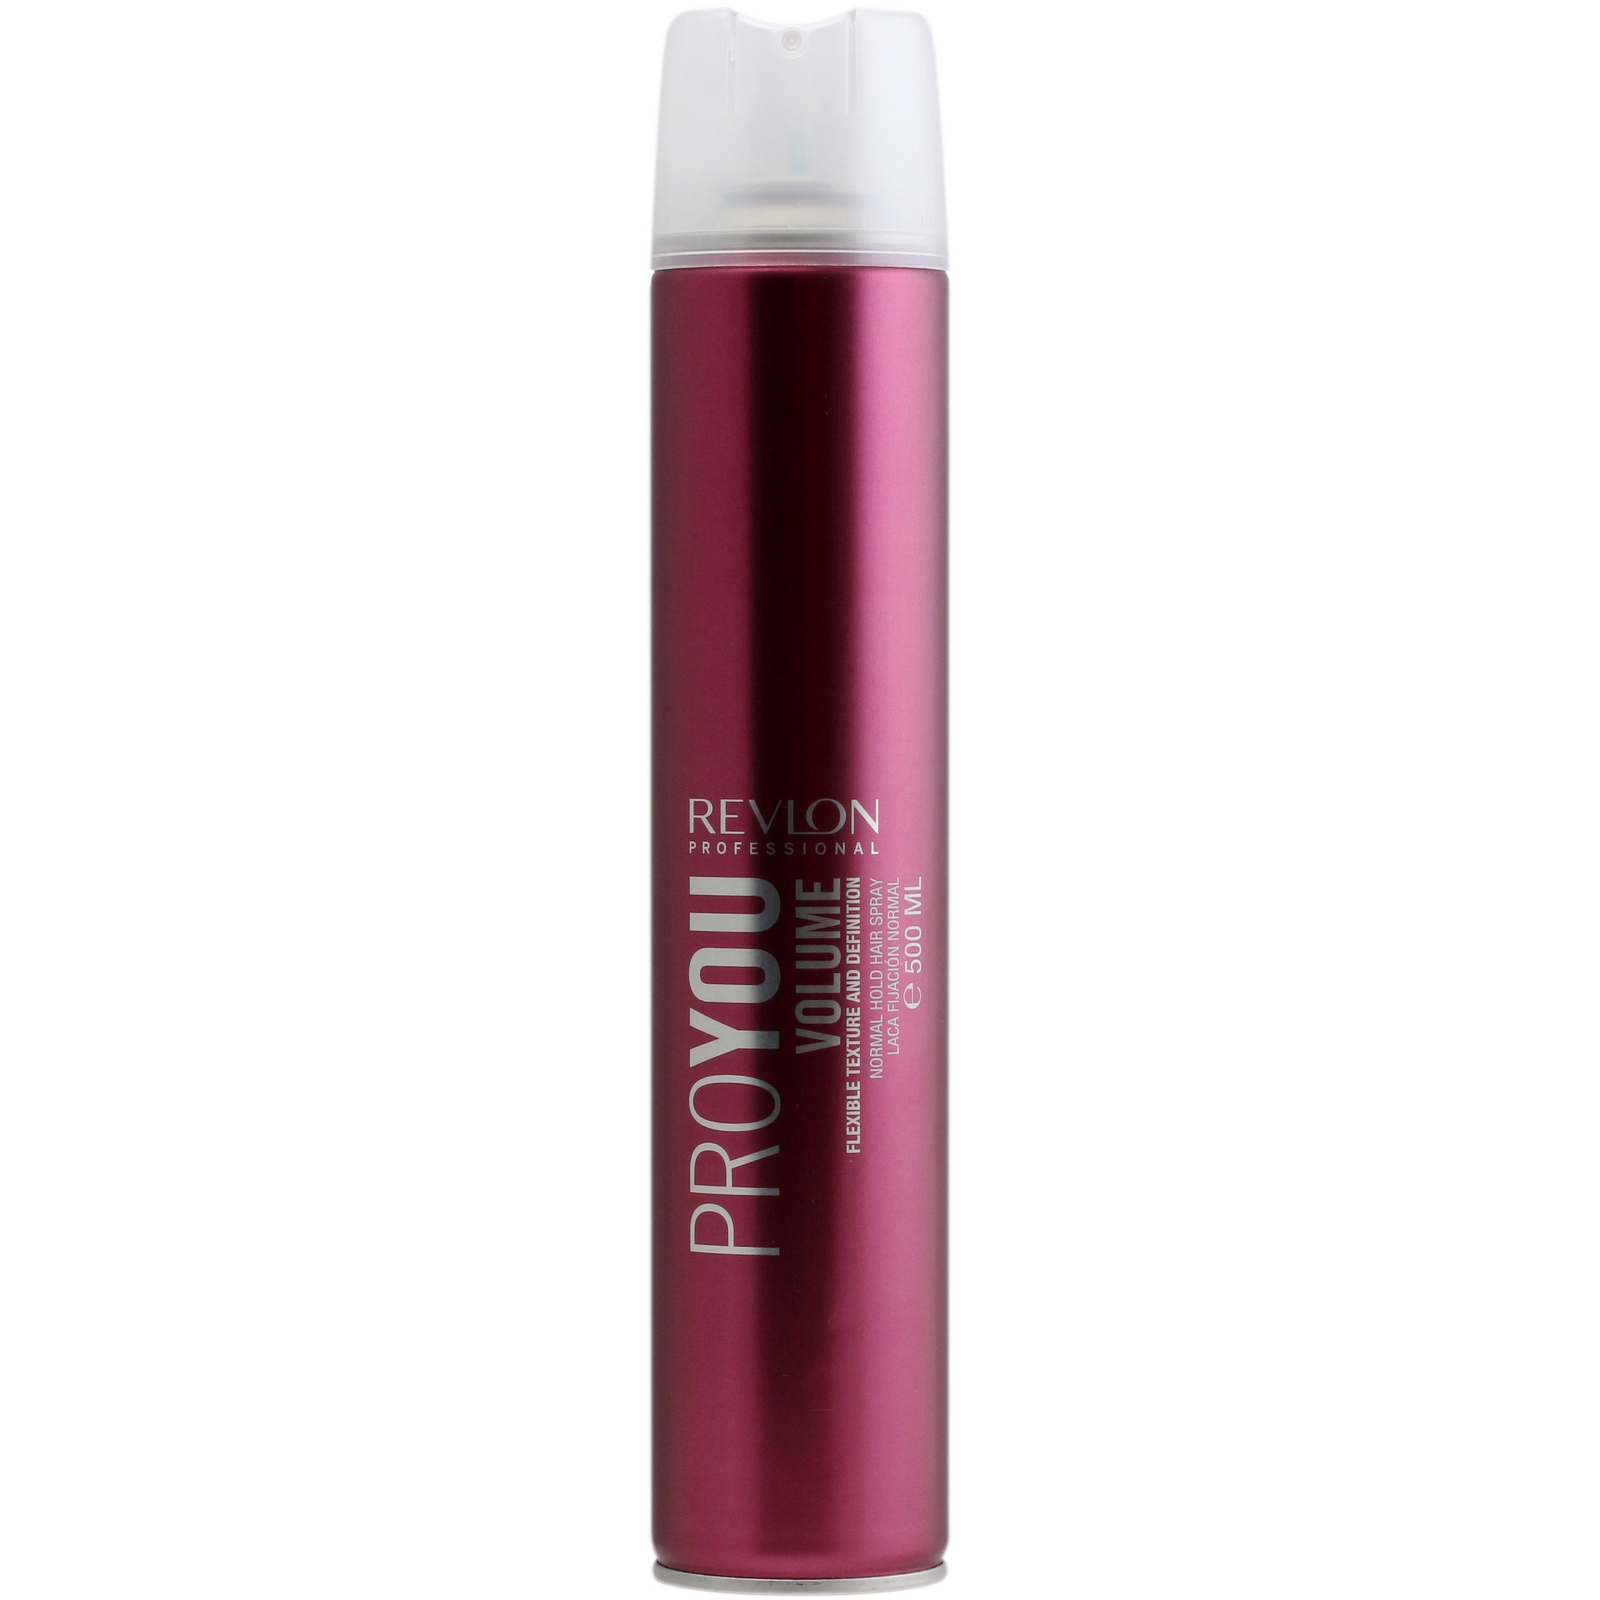 REVLON PROFESSIONAL Proyou Volume Hairspray 500ml 1